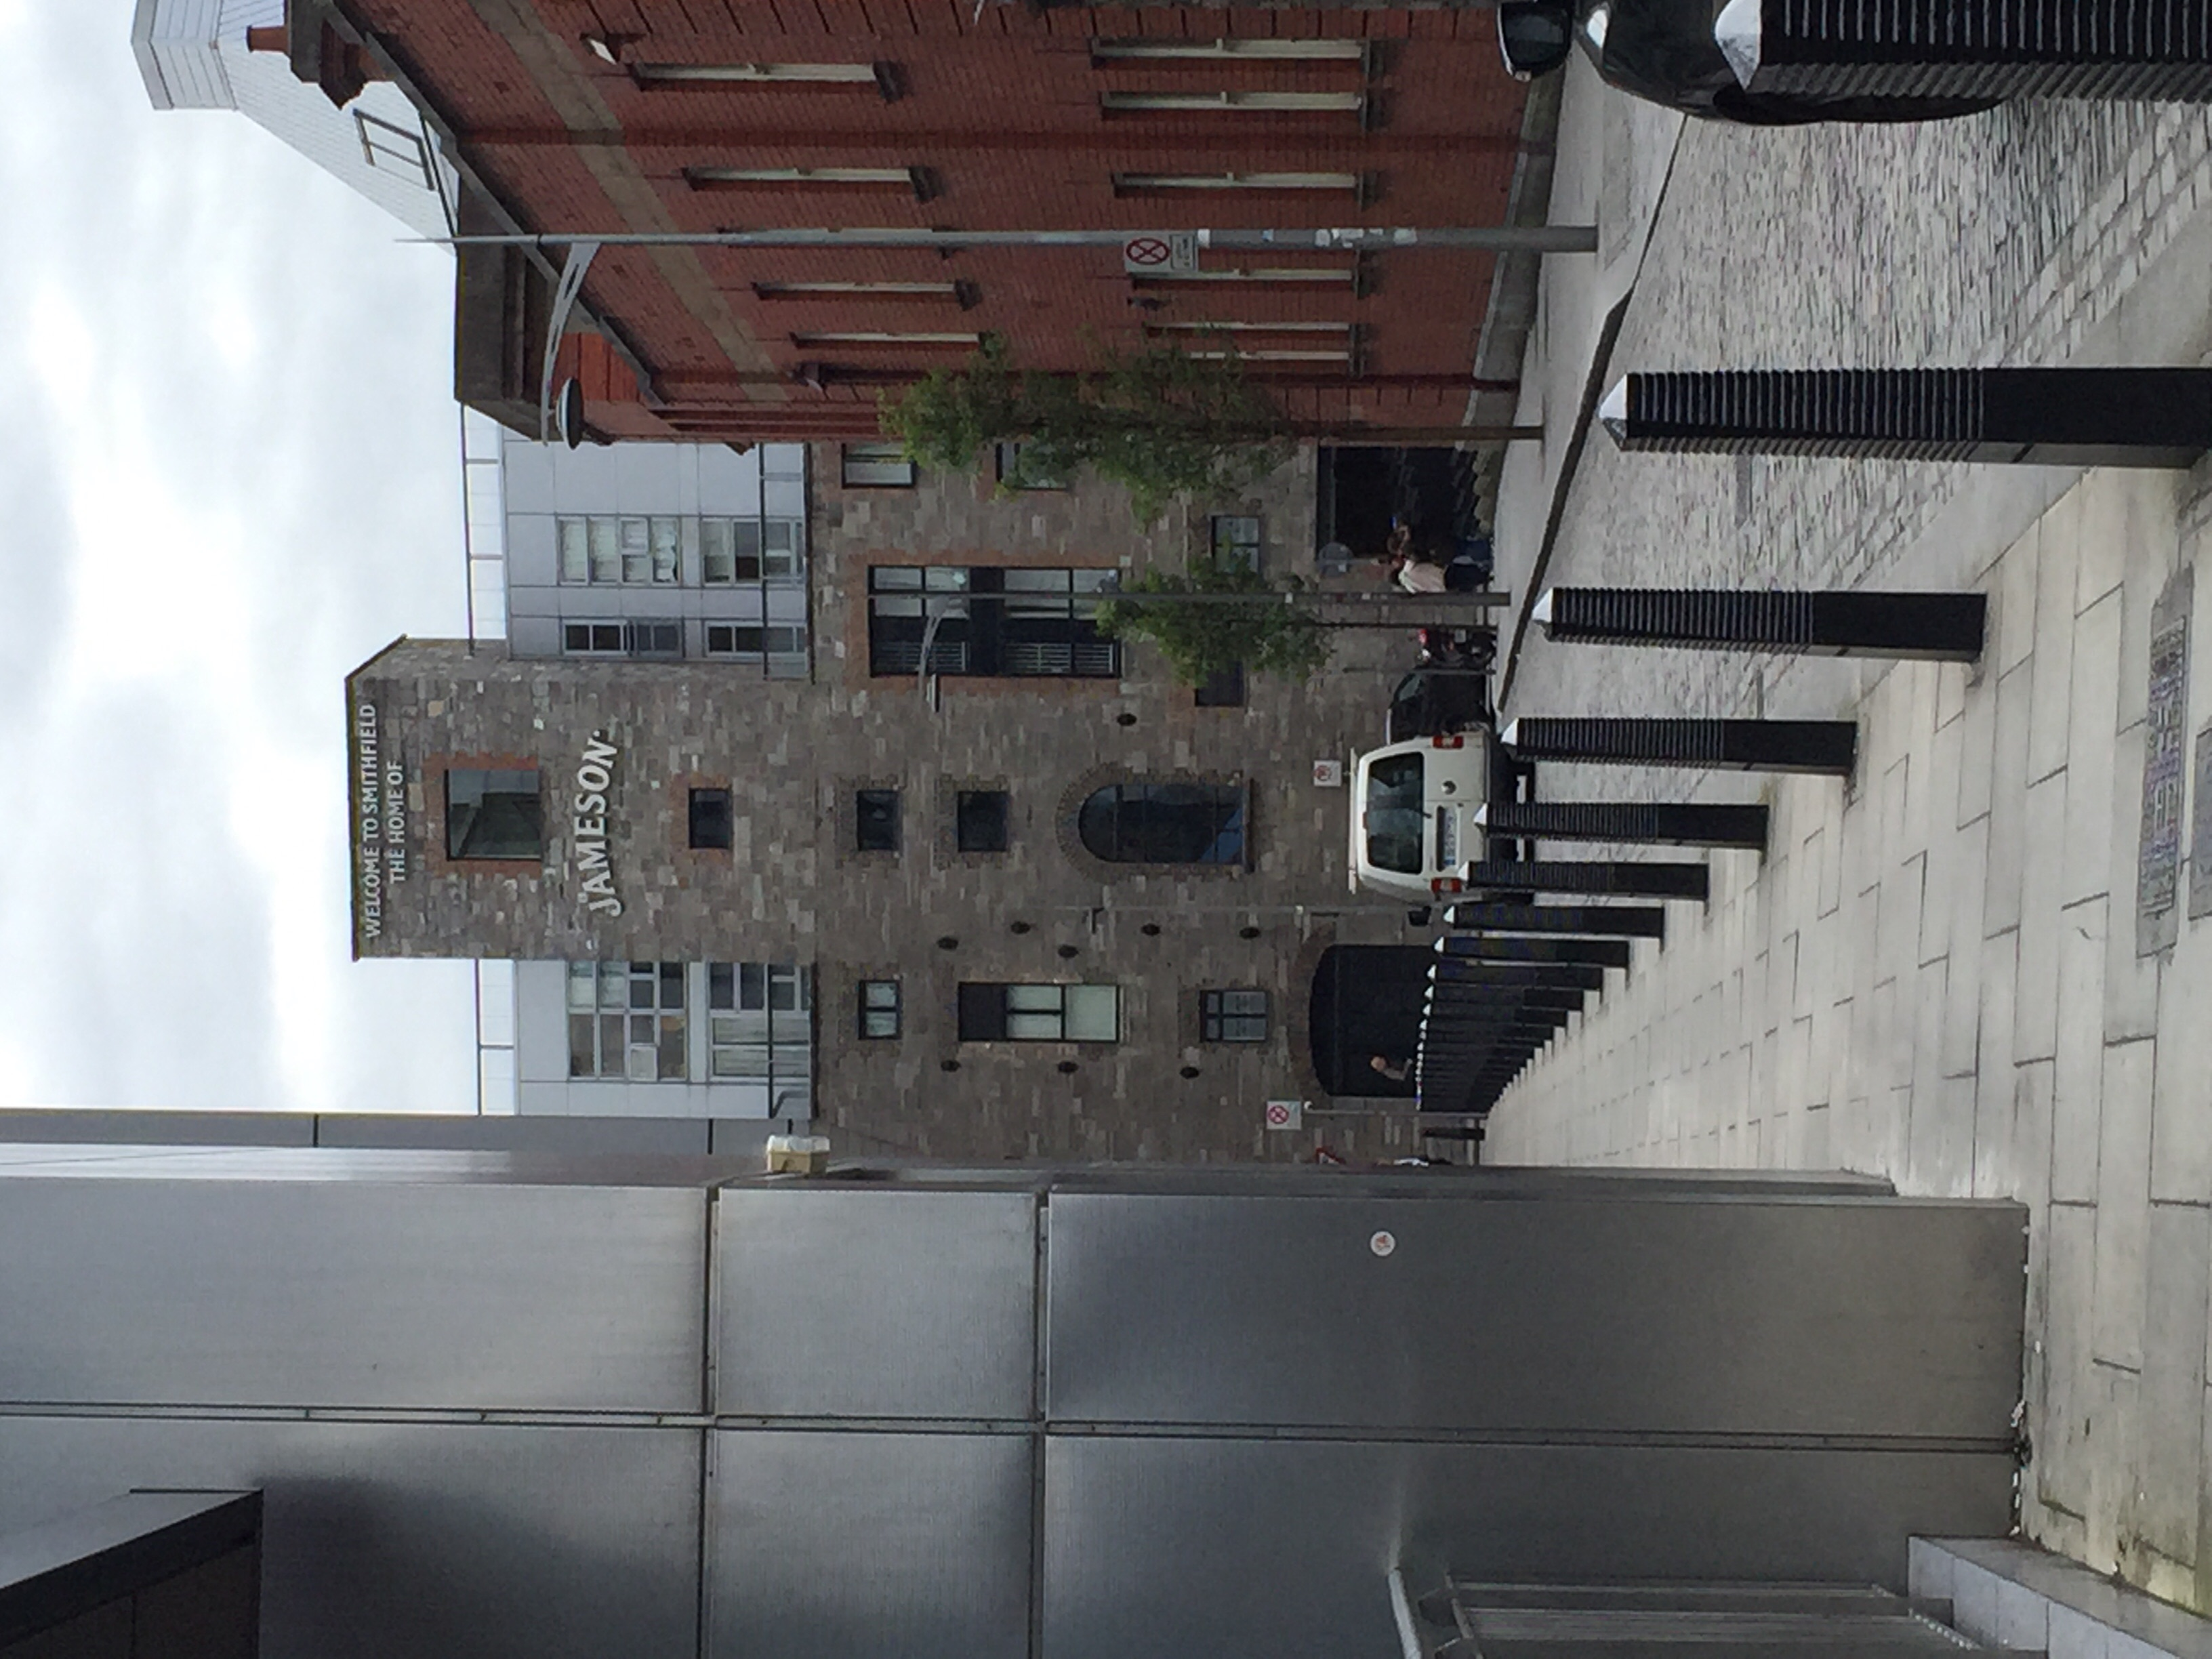 Jameson Distillery from the side street.